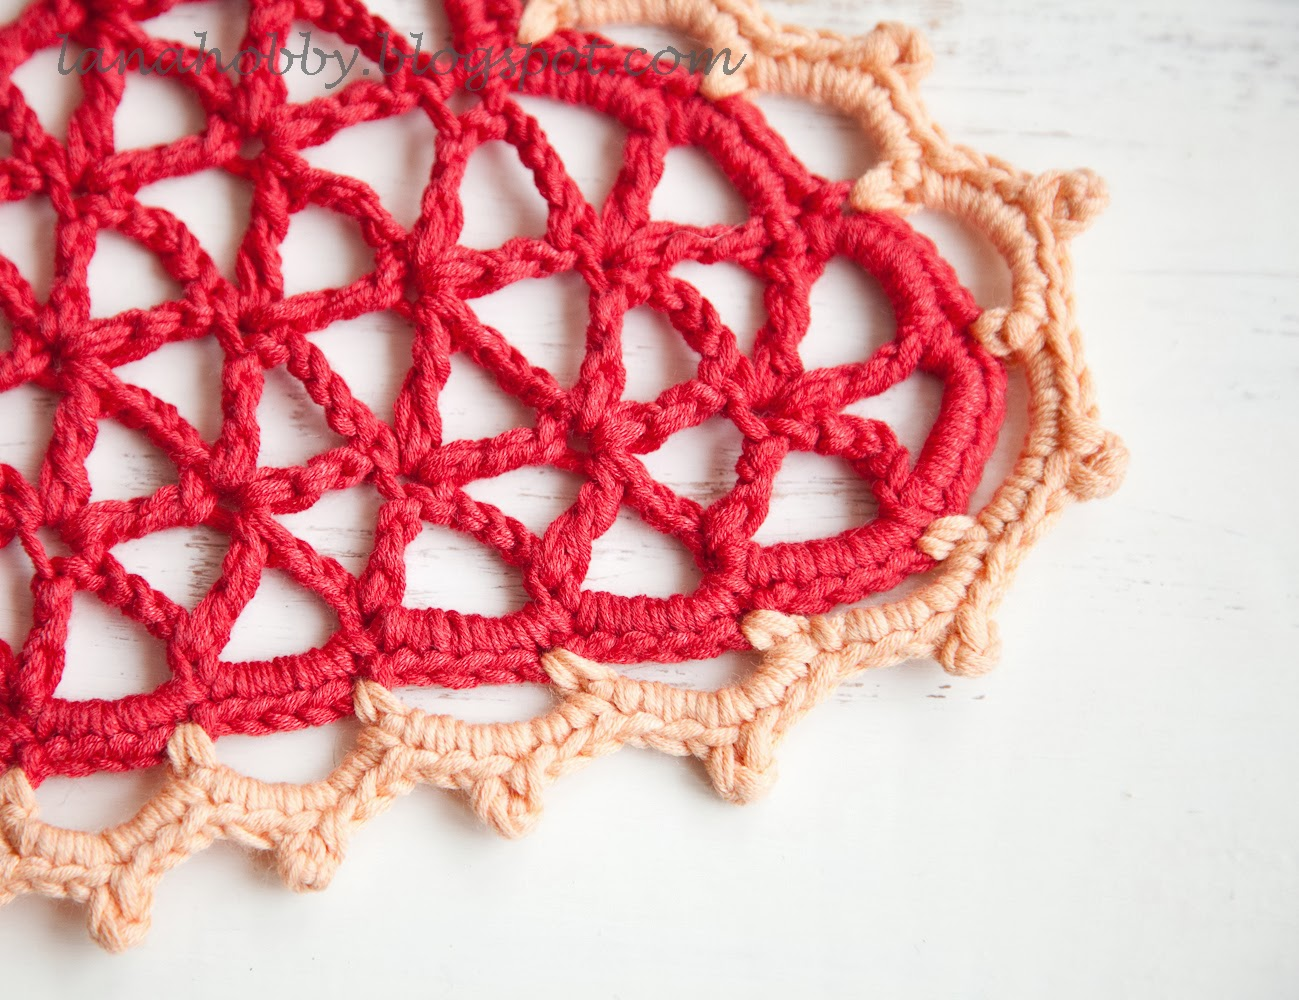 Free Crochet Pattern For Heart Doily : Lana creations My knitting work, knit project and free ...